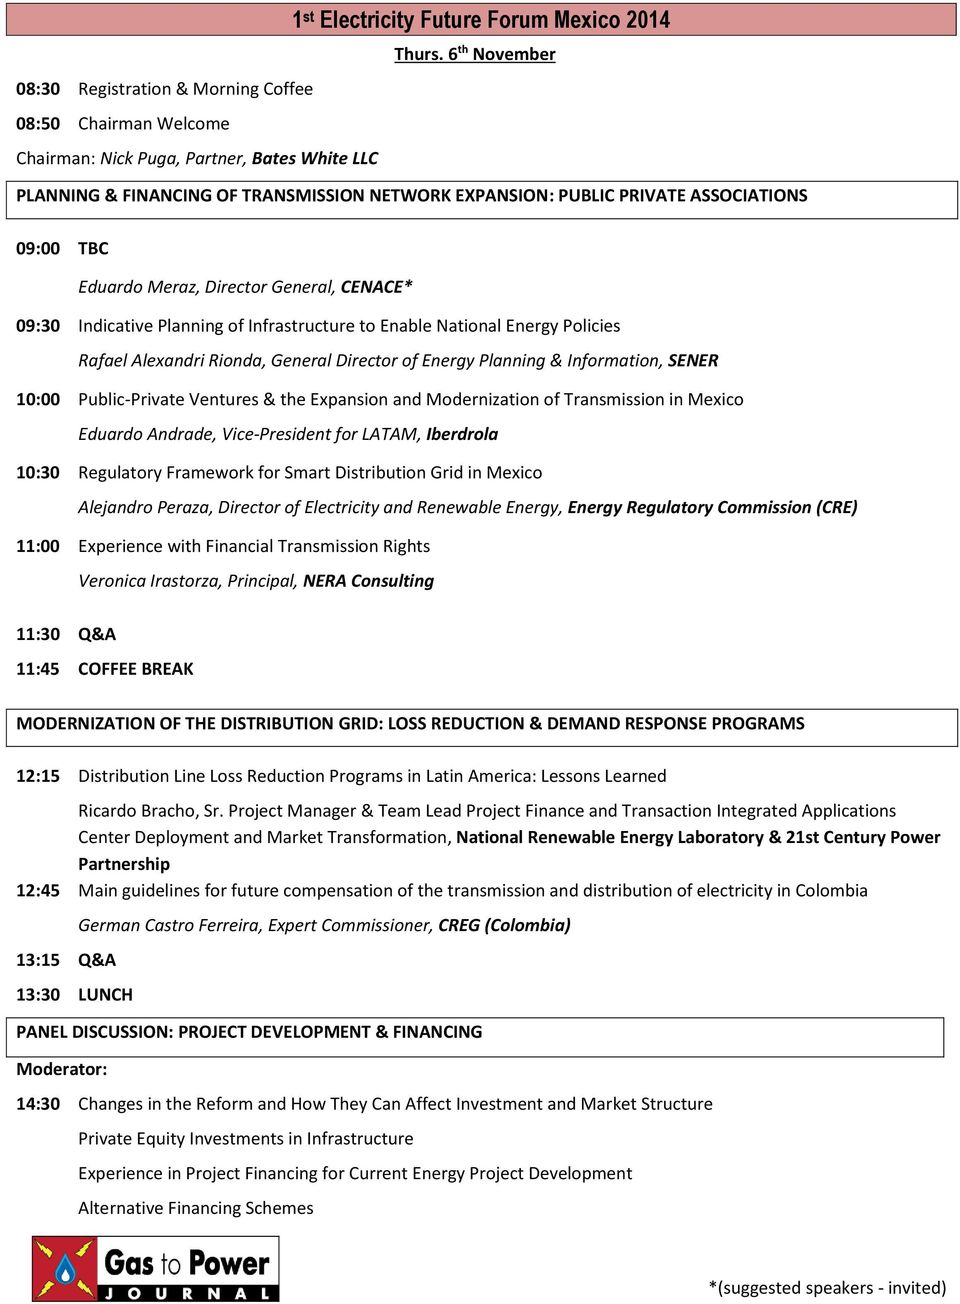 ASSOCIATIONS 09:00 TBC Eduardo Meraz, Director General, CENACE* 09:30 Indicative Planning of Infrastructure to Enable National Energy Policies Rafael Alexandri Rionda, General Director of Energy